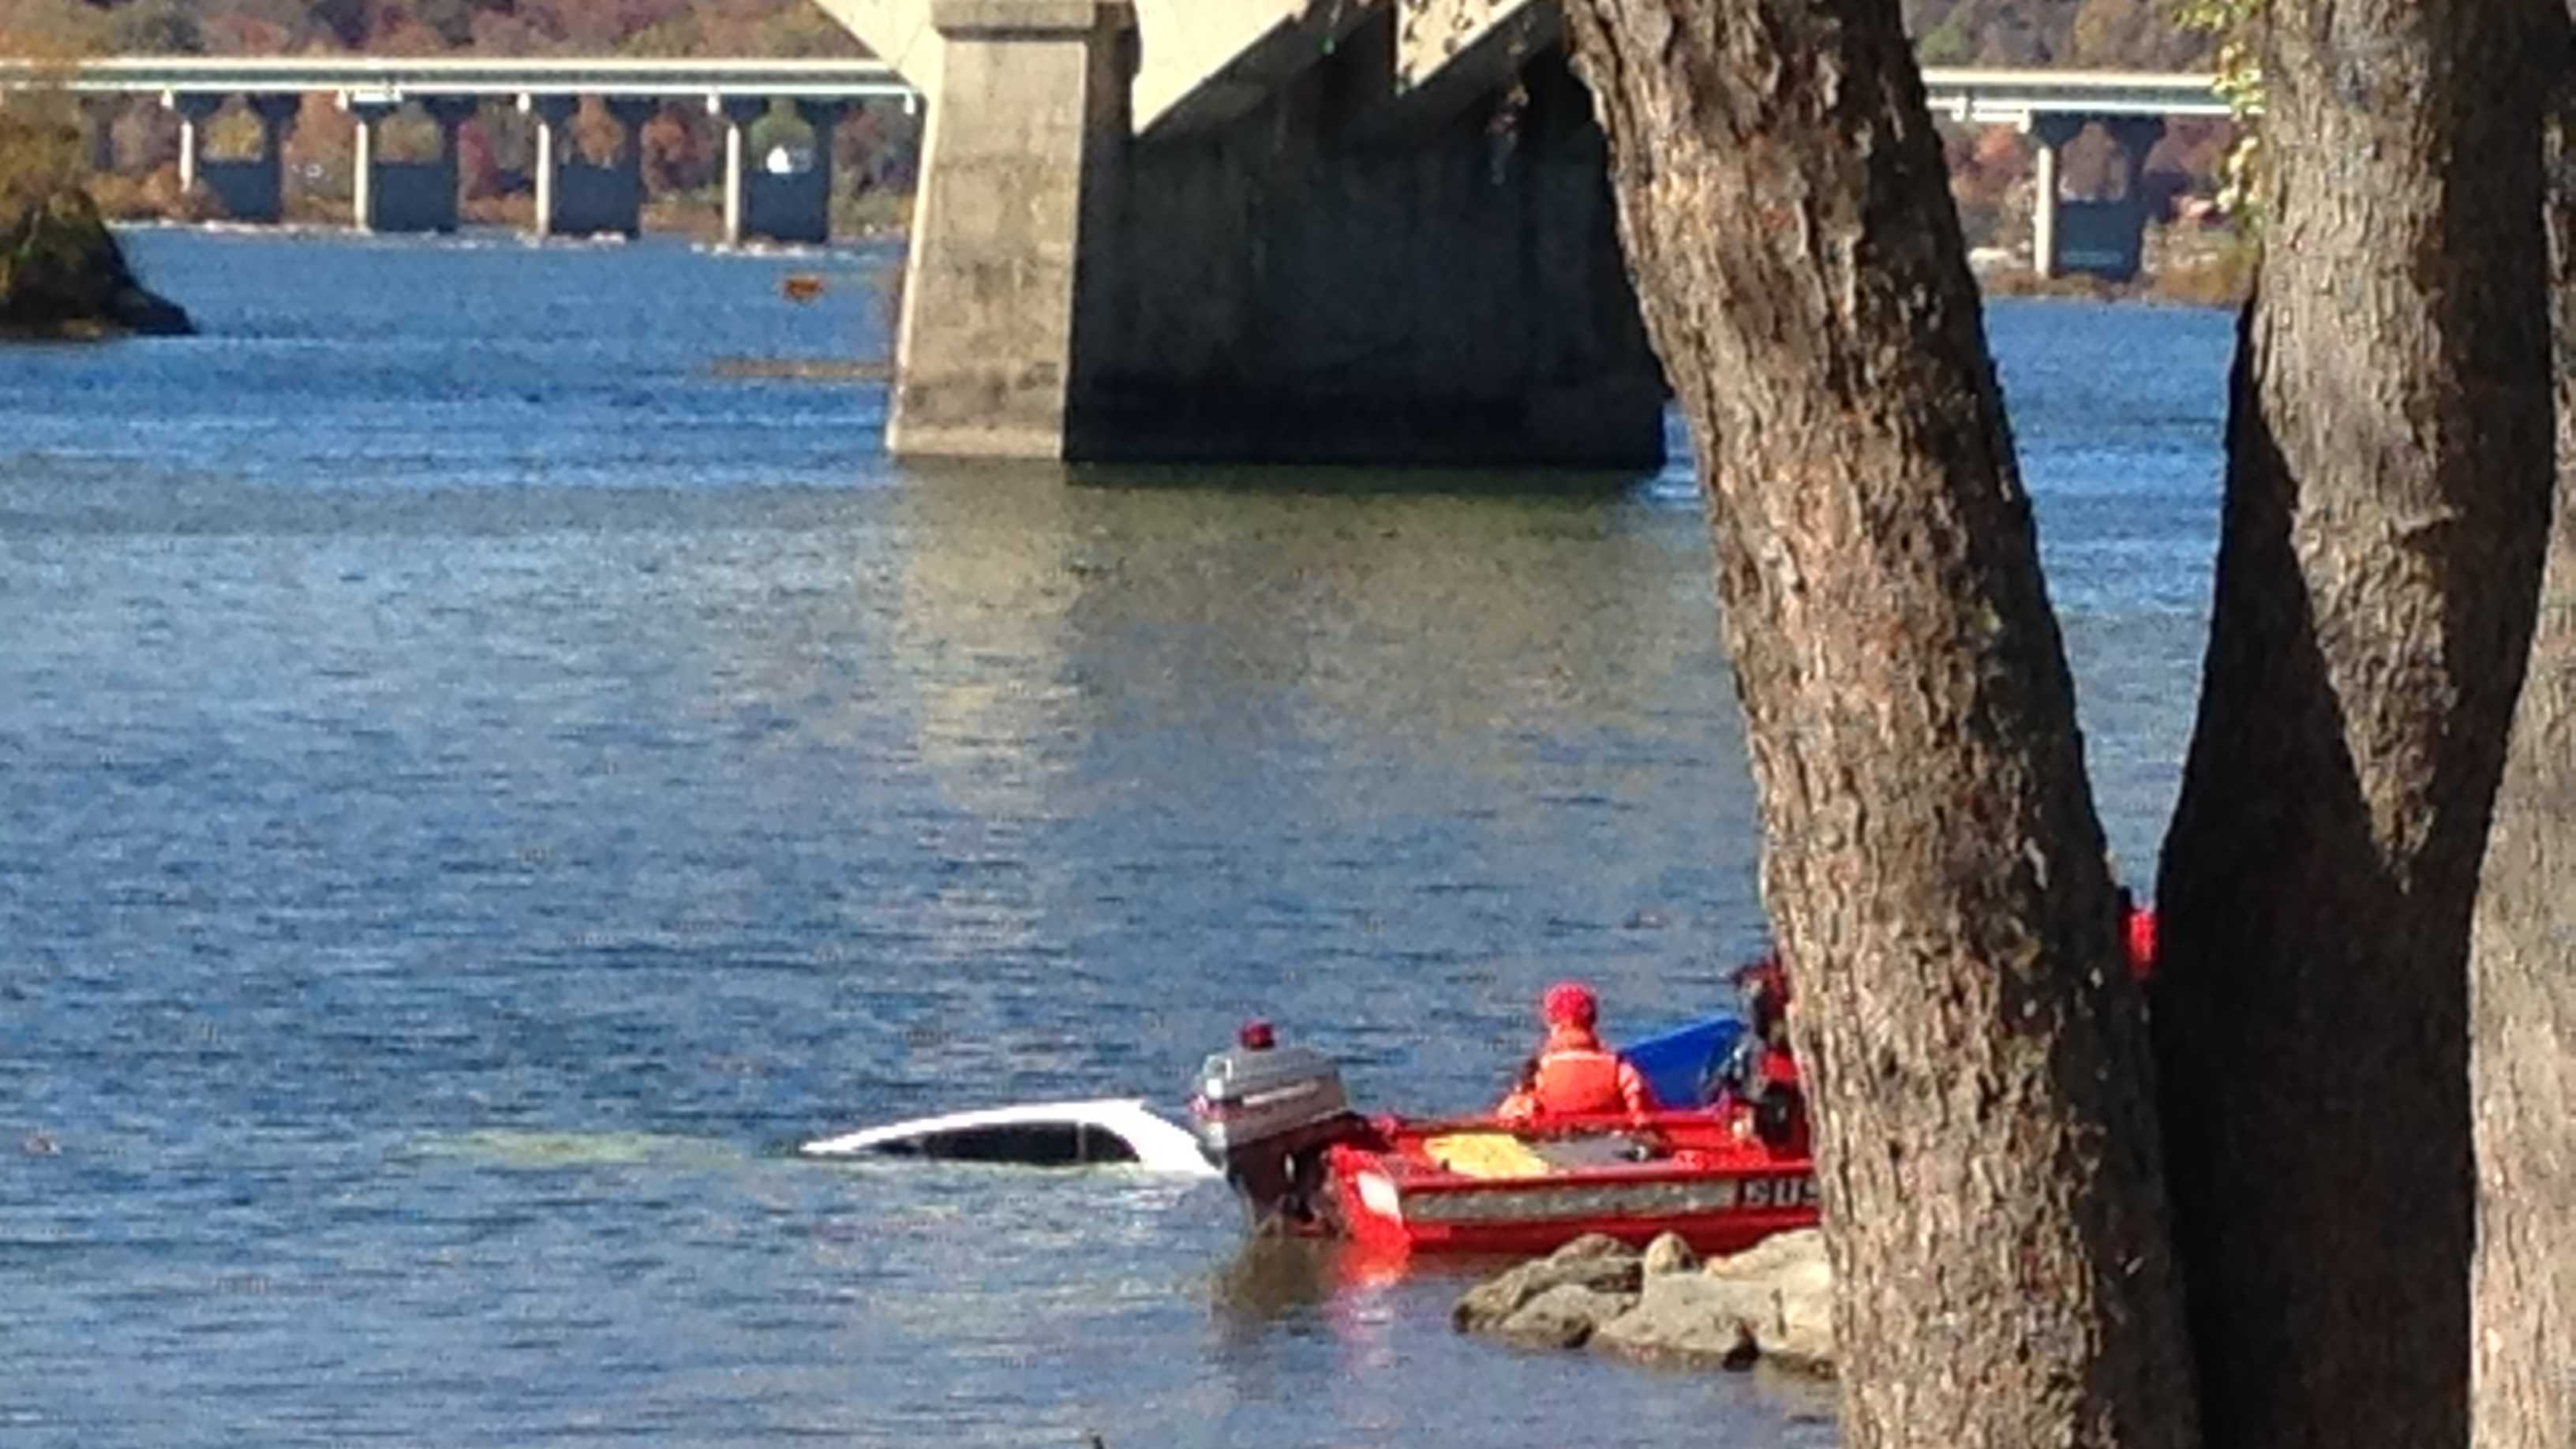 Garrell Tyler's body was found in this vehicle in the Susquehanna River.